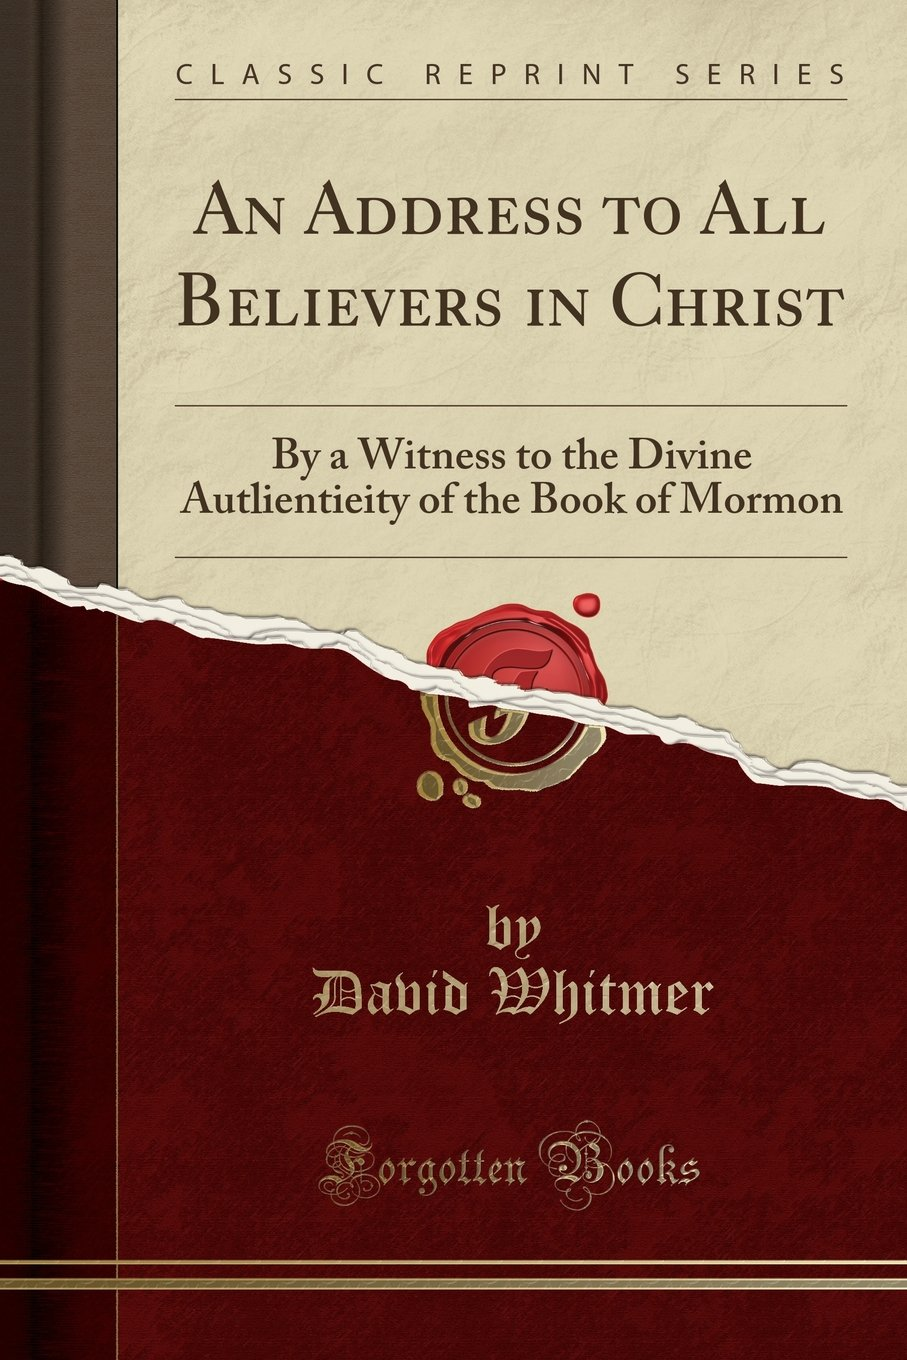 An Address to All Believers in Christ: By a Witness to the Divine Autlientieity of the Book of Mormon (Classic Reprint) PDF